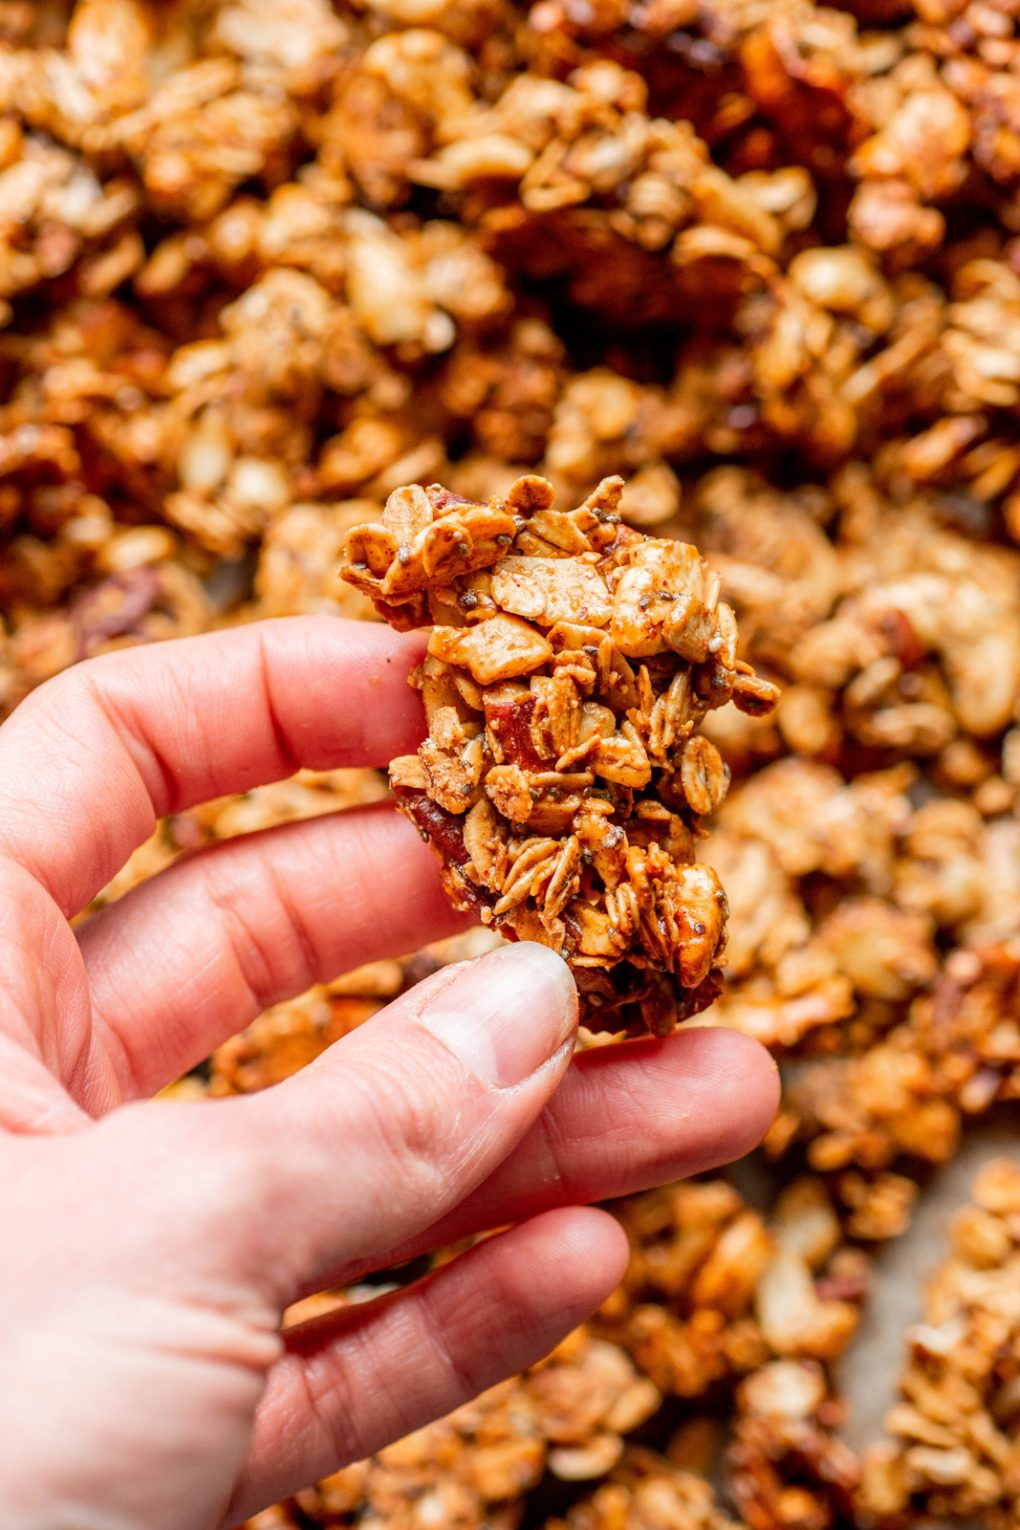 Image of a hand holding a large granola cluster, over a baking sheet filled with gluten free granola.